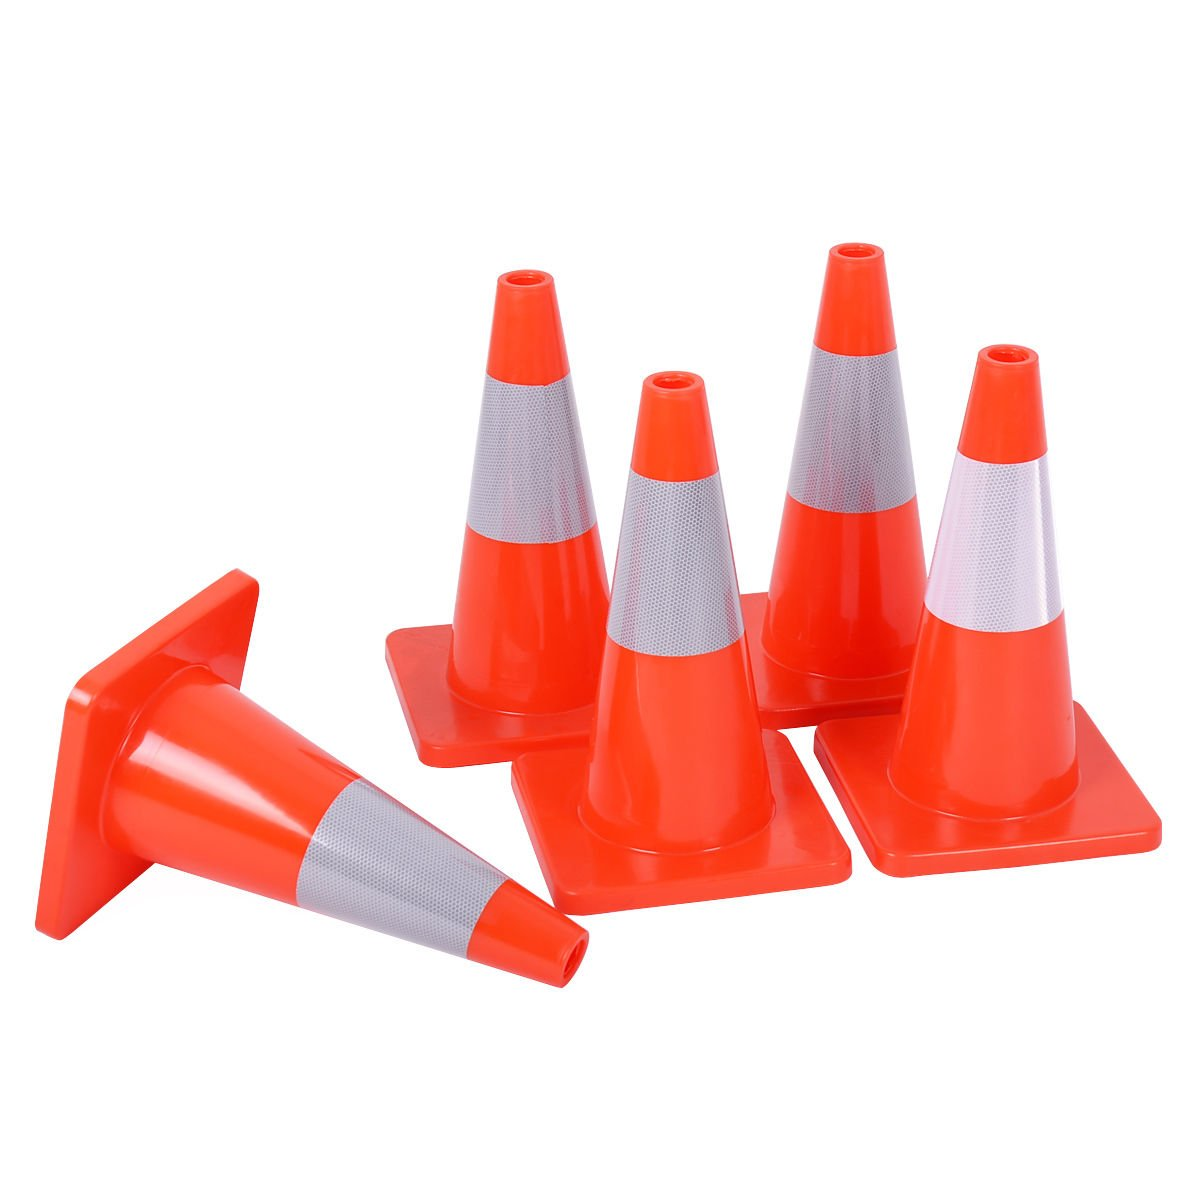 Goplus 5Pcs Traffic Cones 18'' Orange Slim Fluorescent Reflective Road Safety Parking Cones by Goplus